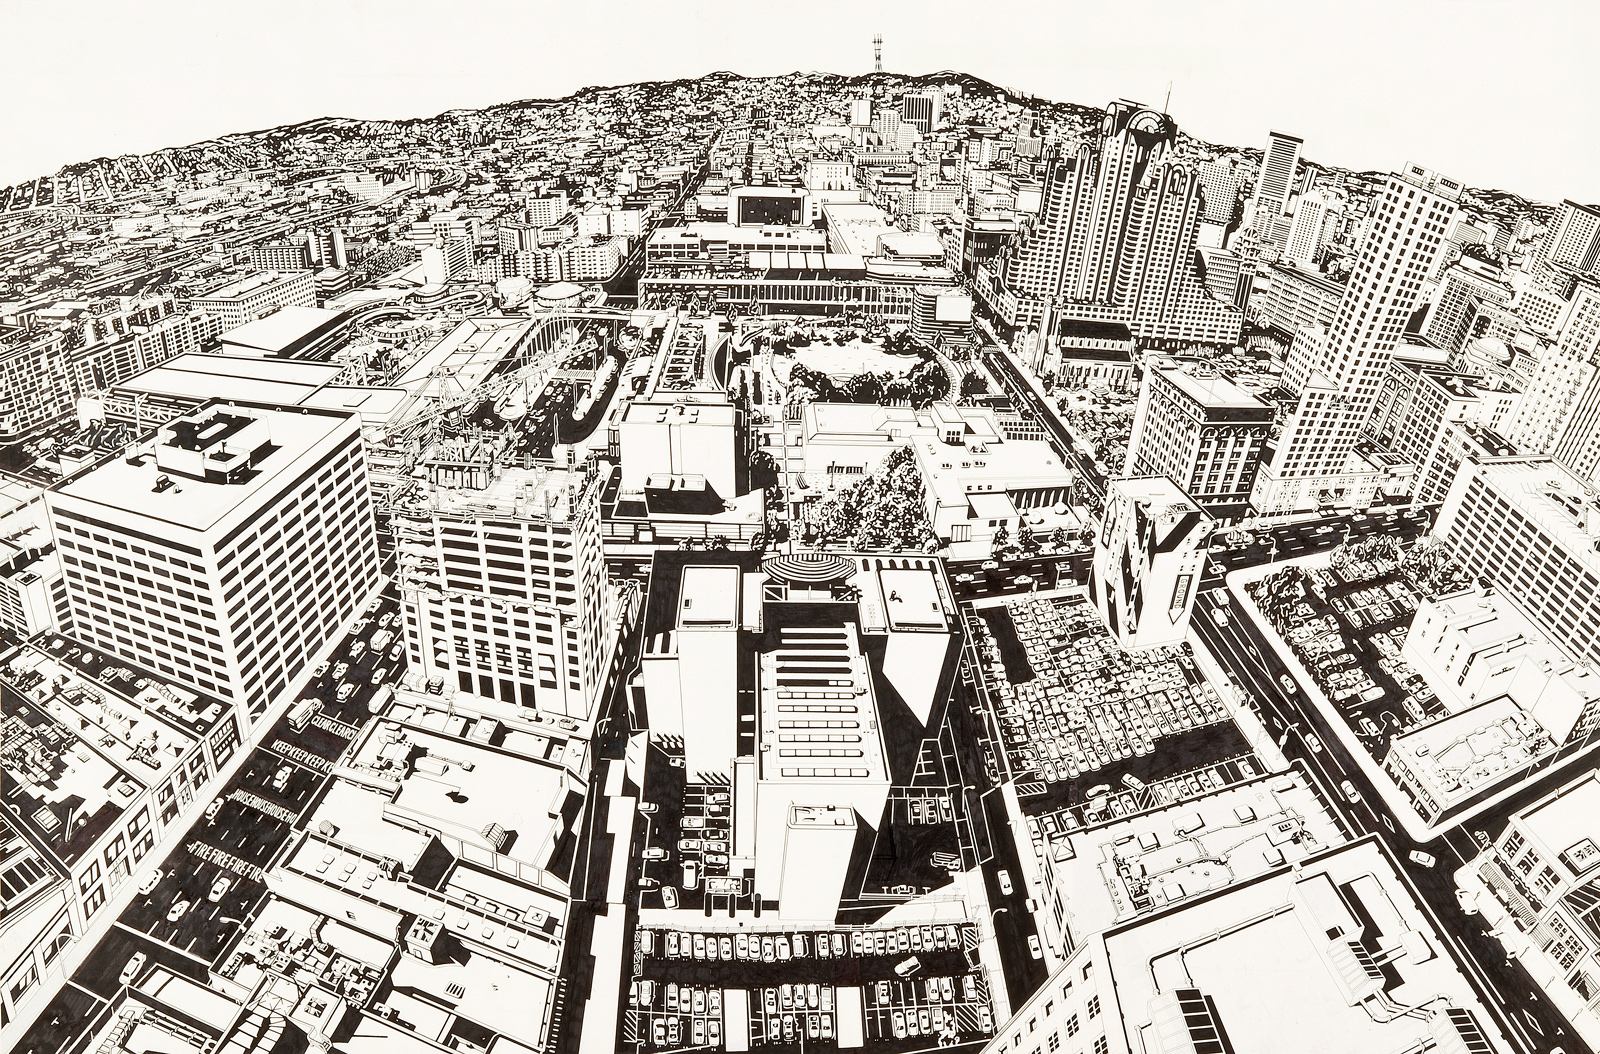 RIgo 98 (now Rigo 23), Study for Looking at 1998 San Francisco from the Top of 1925, 1998.